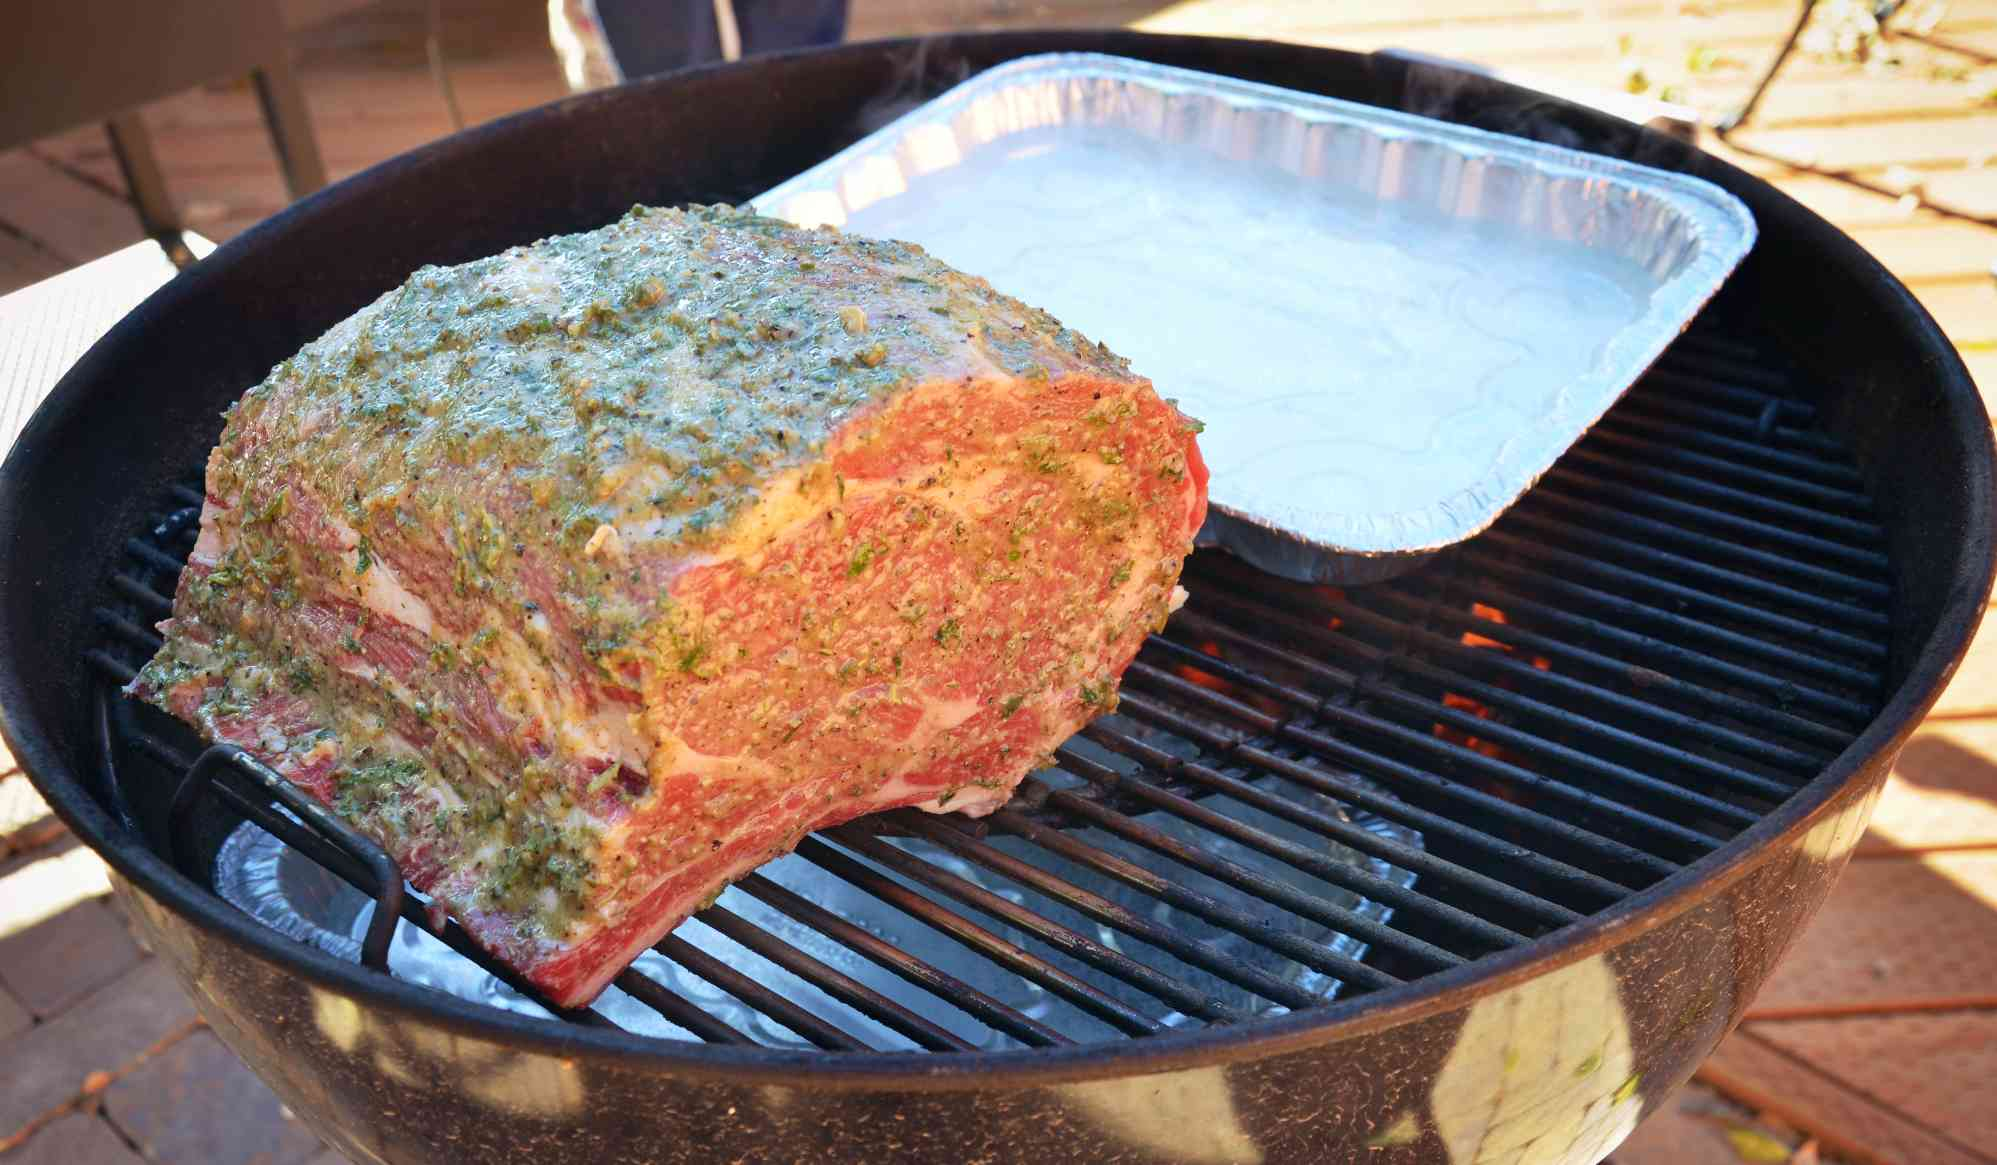 Prime Rib on Charcoal Grill